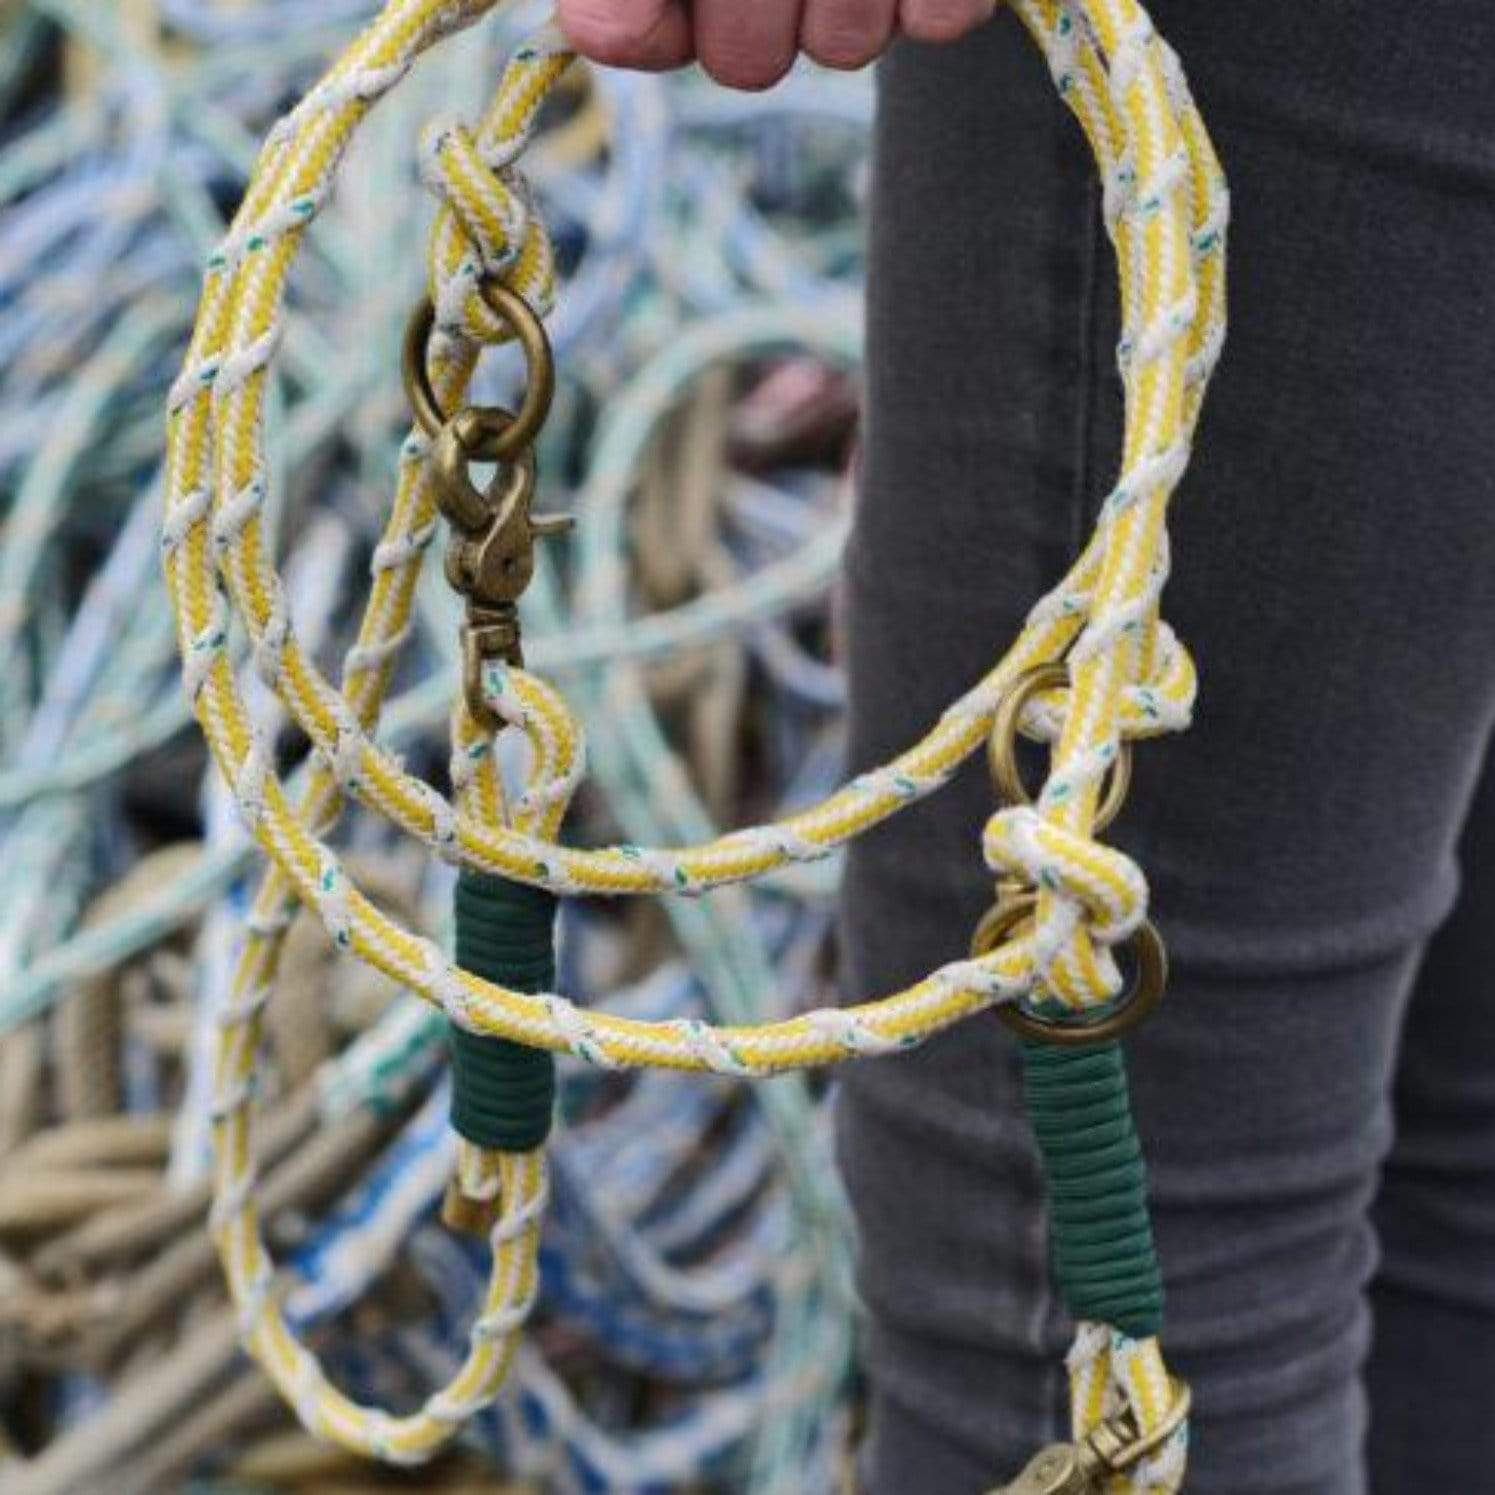 Bracenet, sustainable and plastic free dog leash, eco friendly made of old fishing nets, in yellow and white